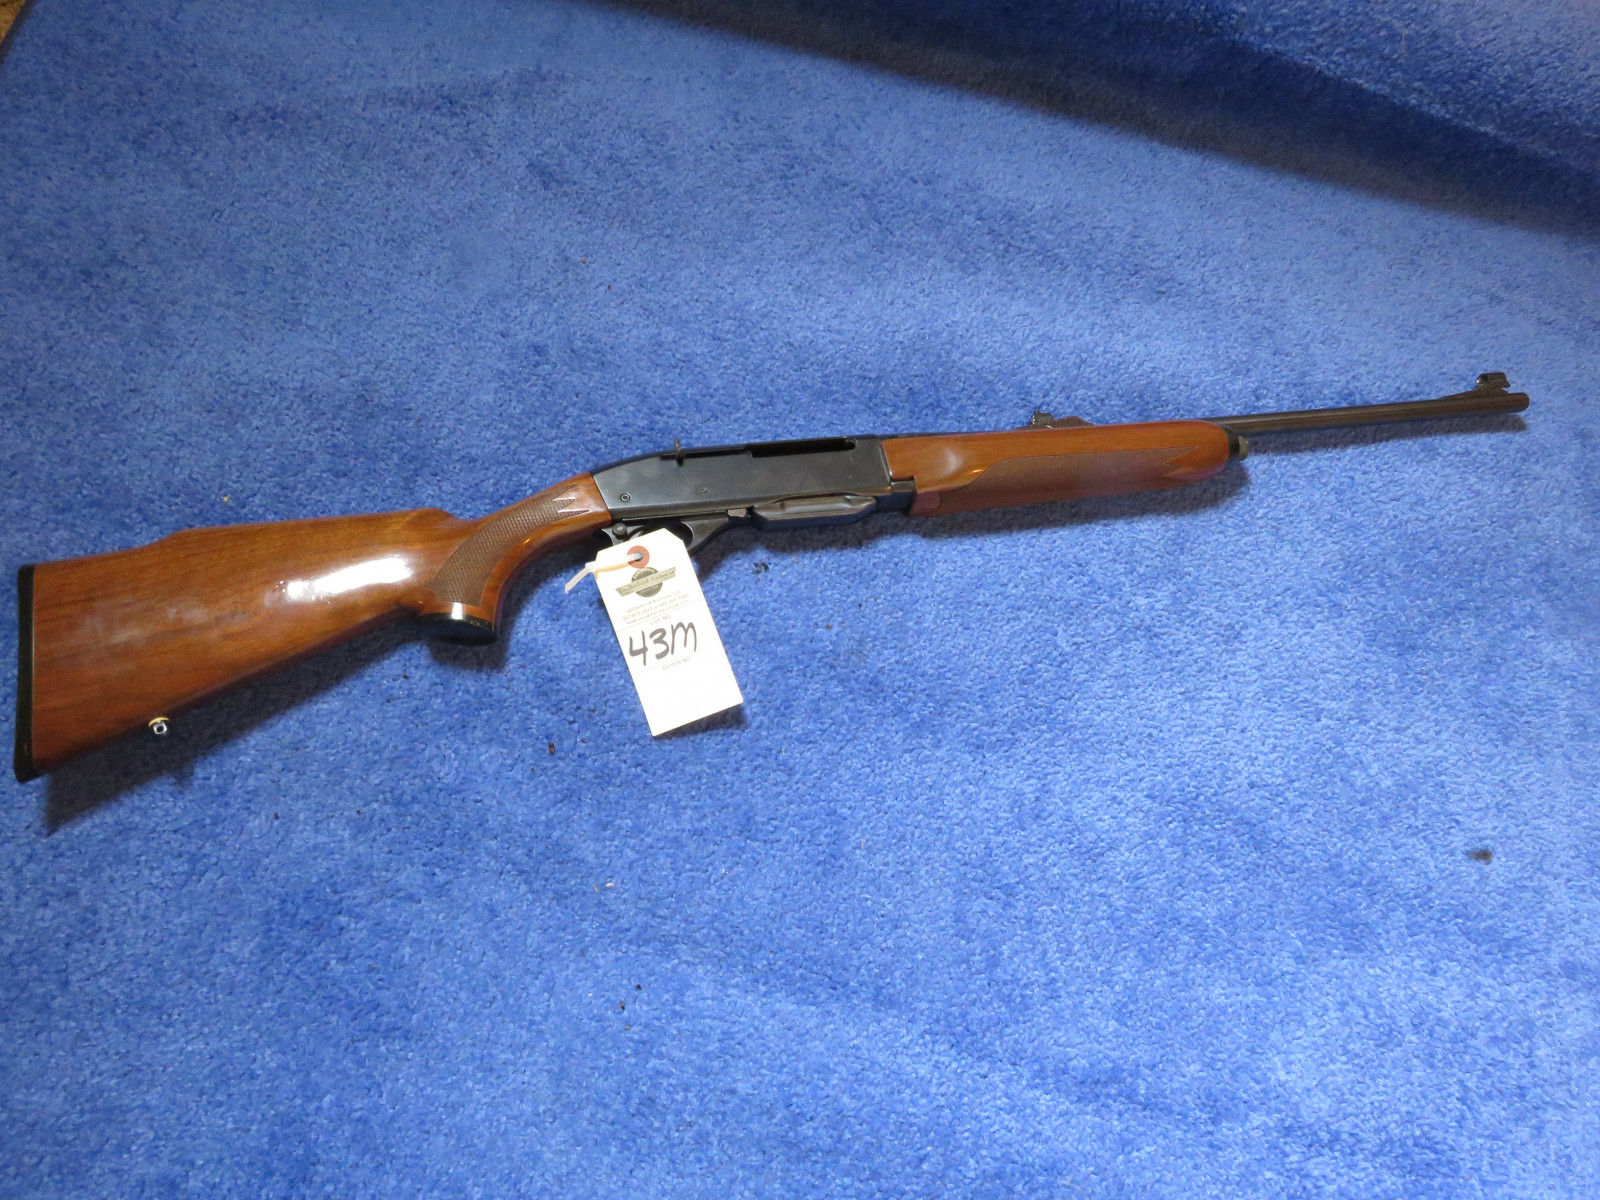 Remington 7400 .30-.06 Rifle - Image 1